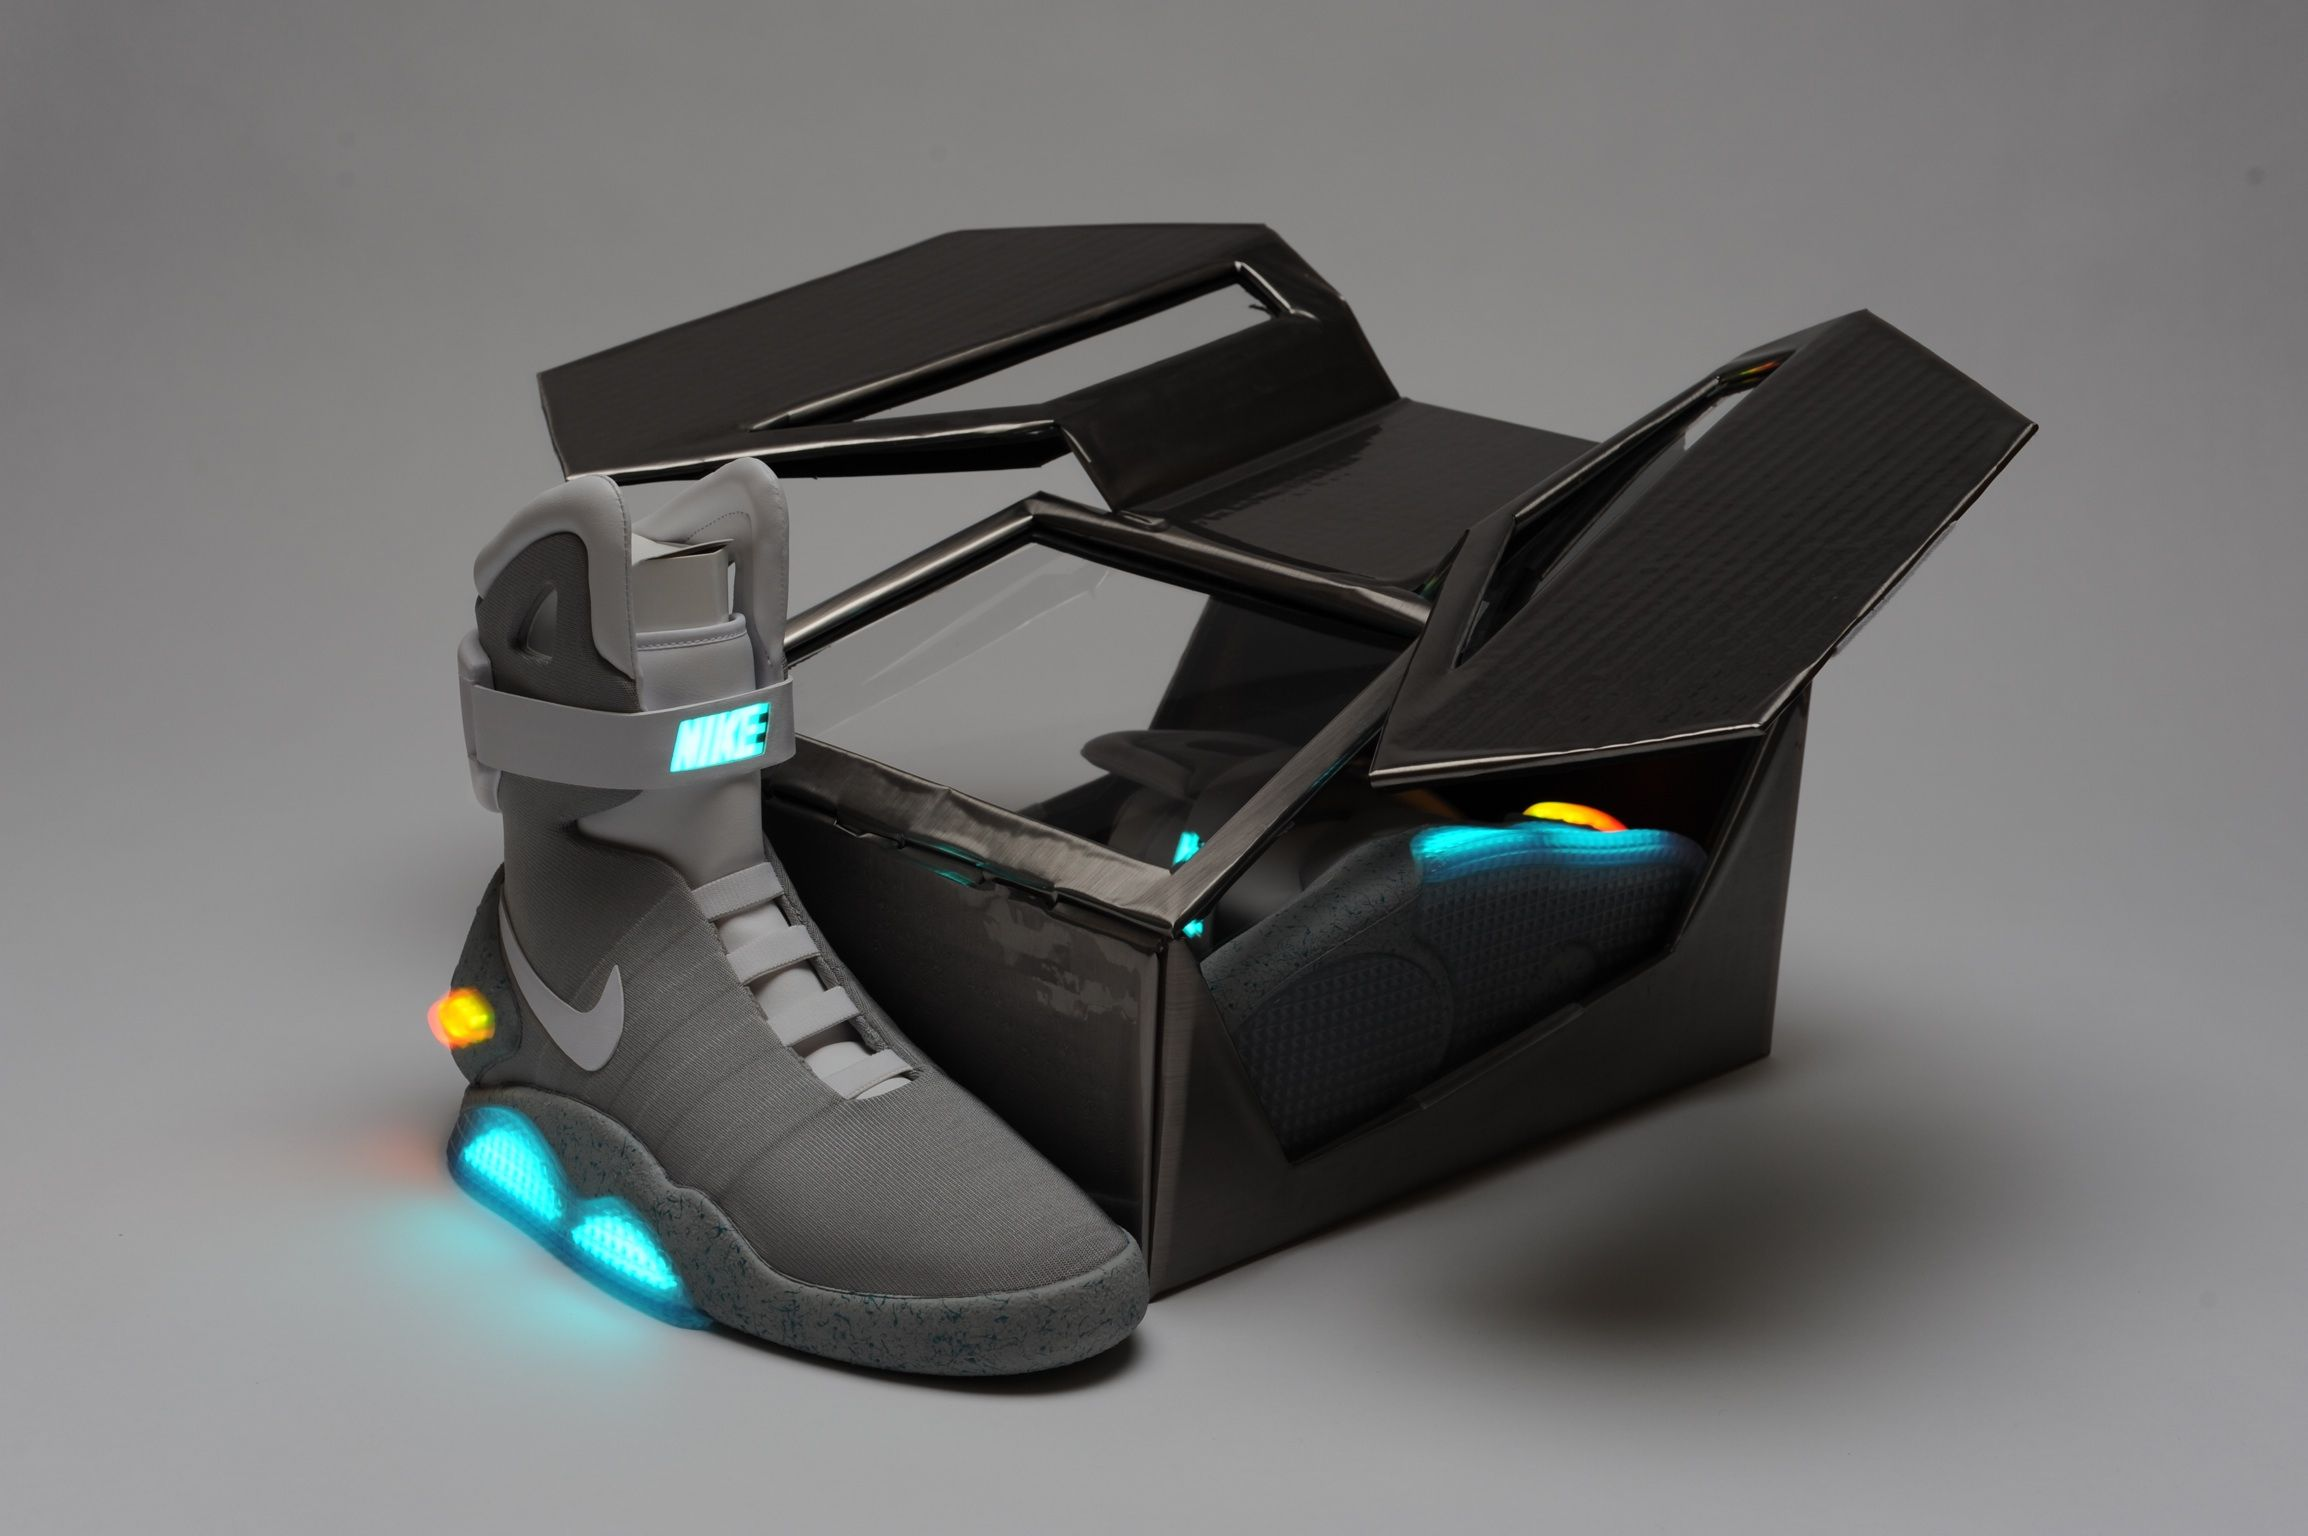 A custom box designed for the Nike Mag shoes or the Back to